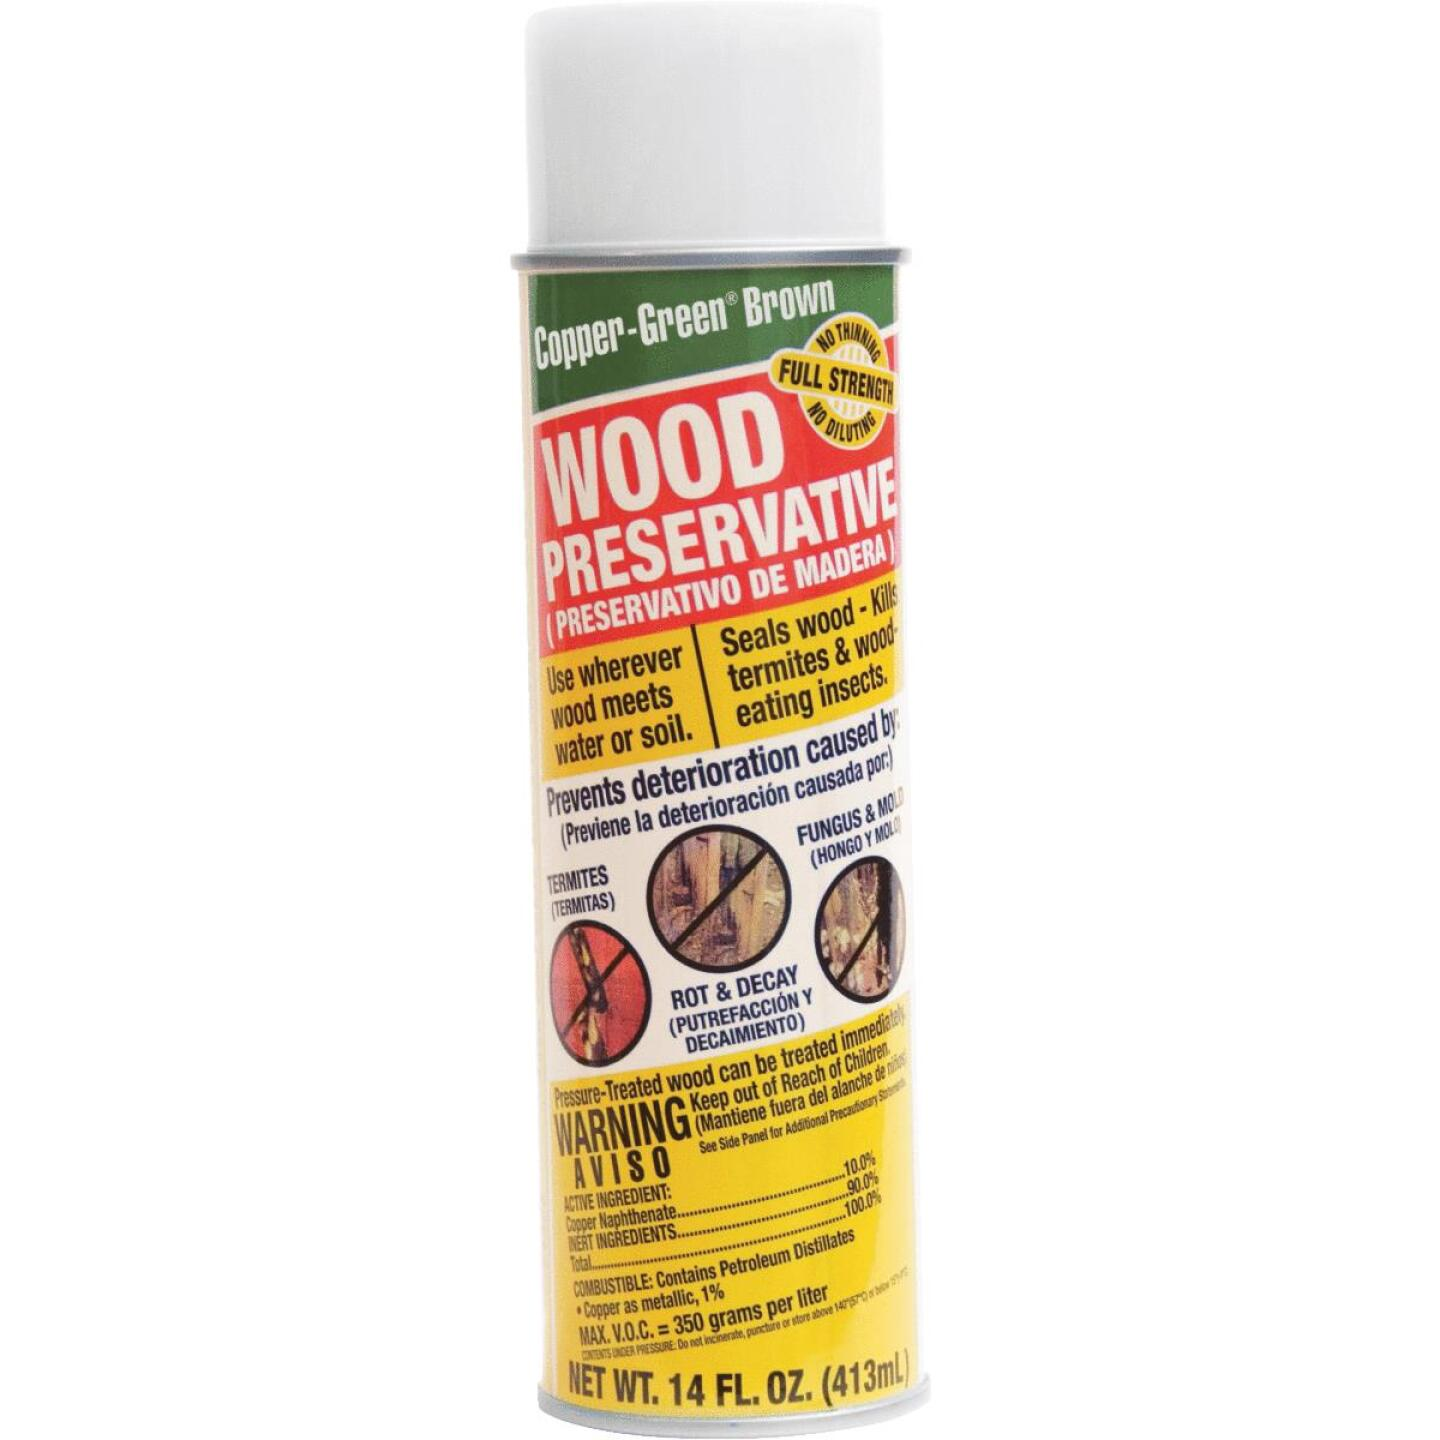 Copper-Green Exterior Wood Preservative, Brown,14 Oz. Image 1